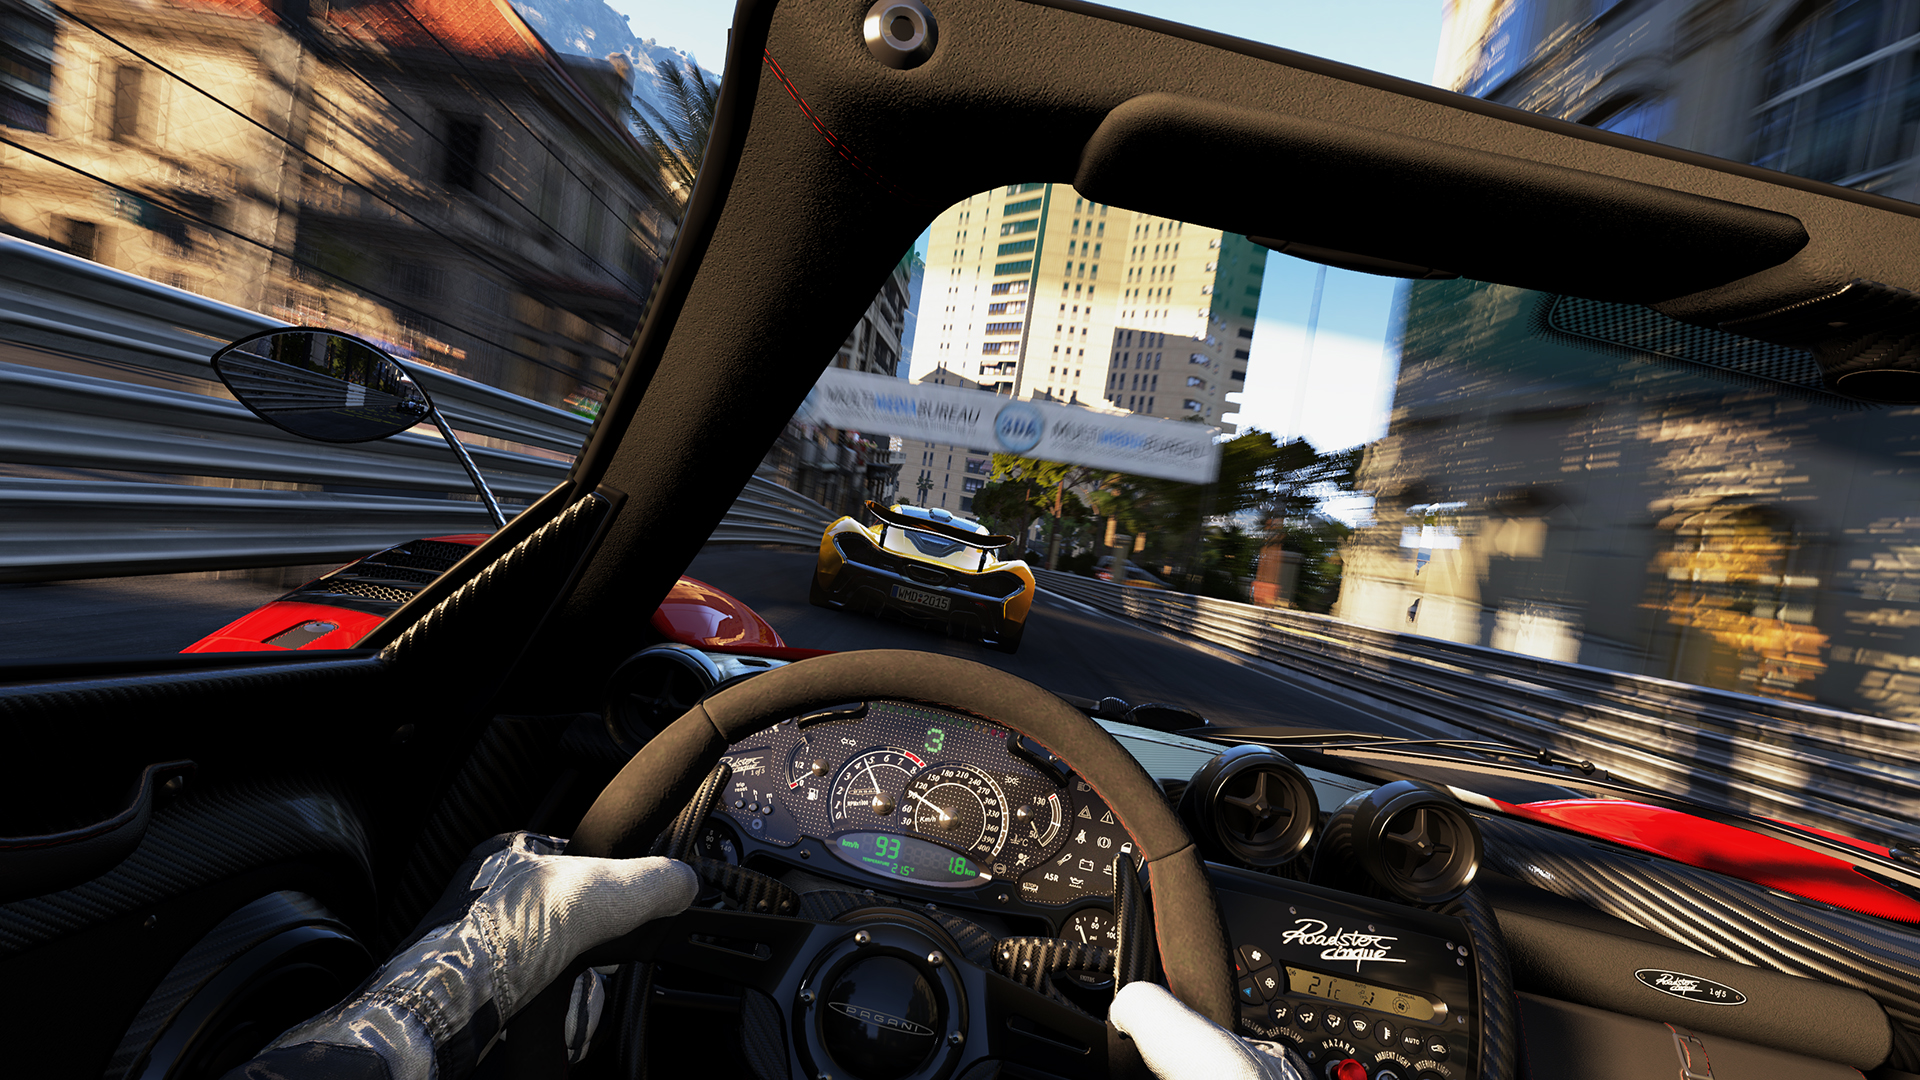 project cars: complete car list featuring lykan hypersport as free